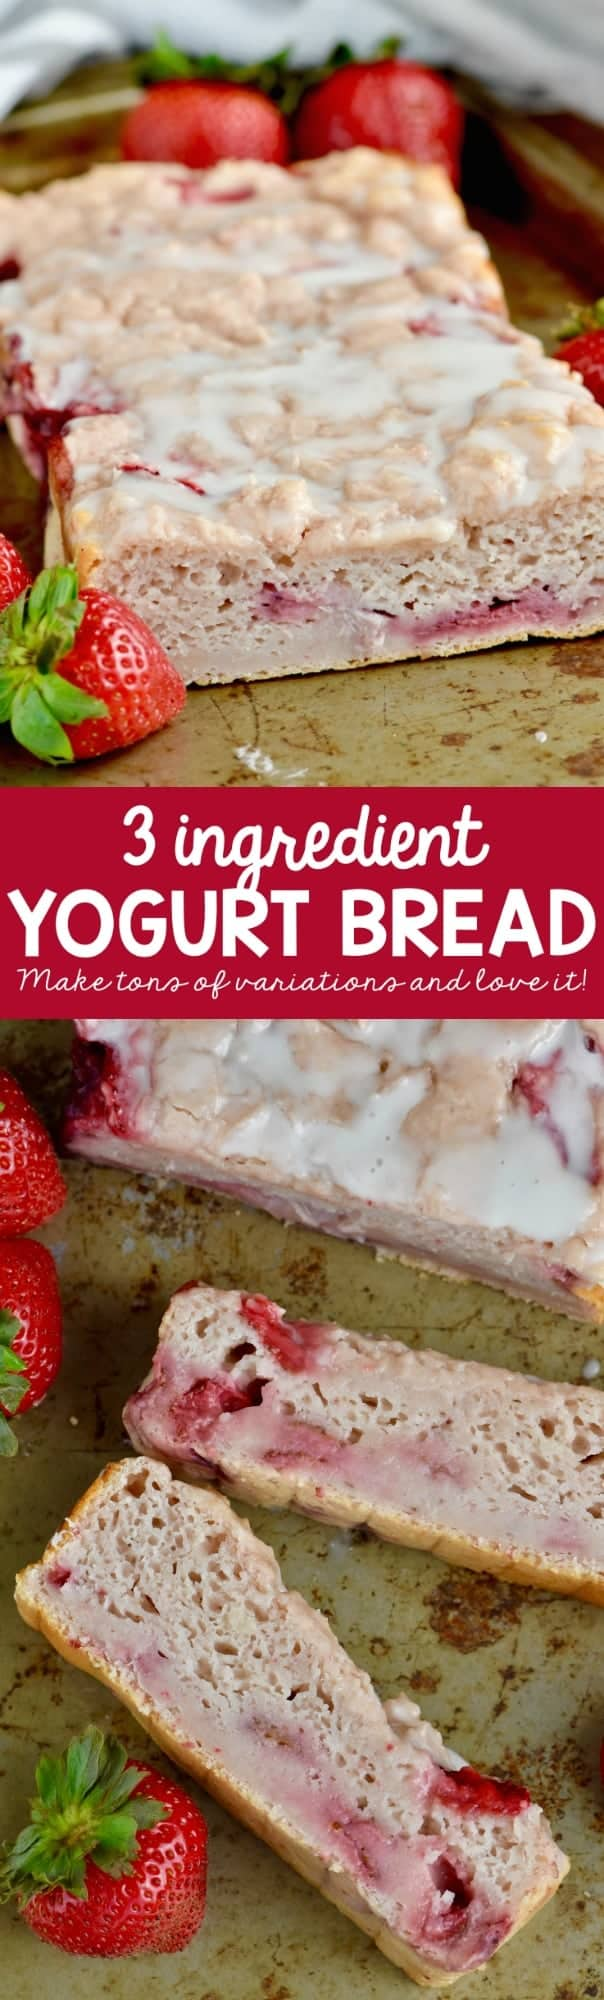 This Three Ingredient Yogurt Bread is so easy to whip up that the kids can do it!